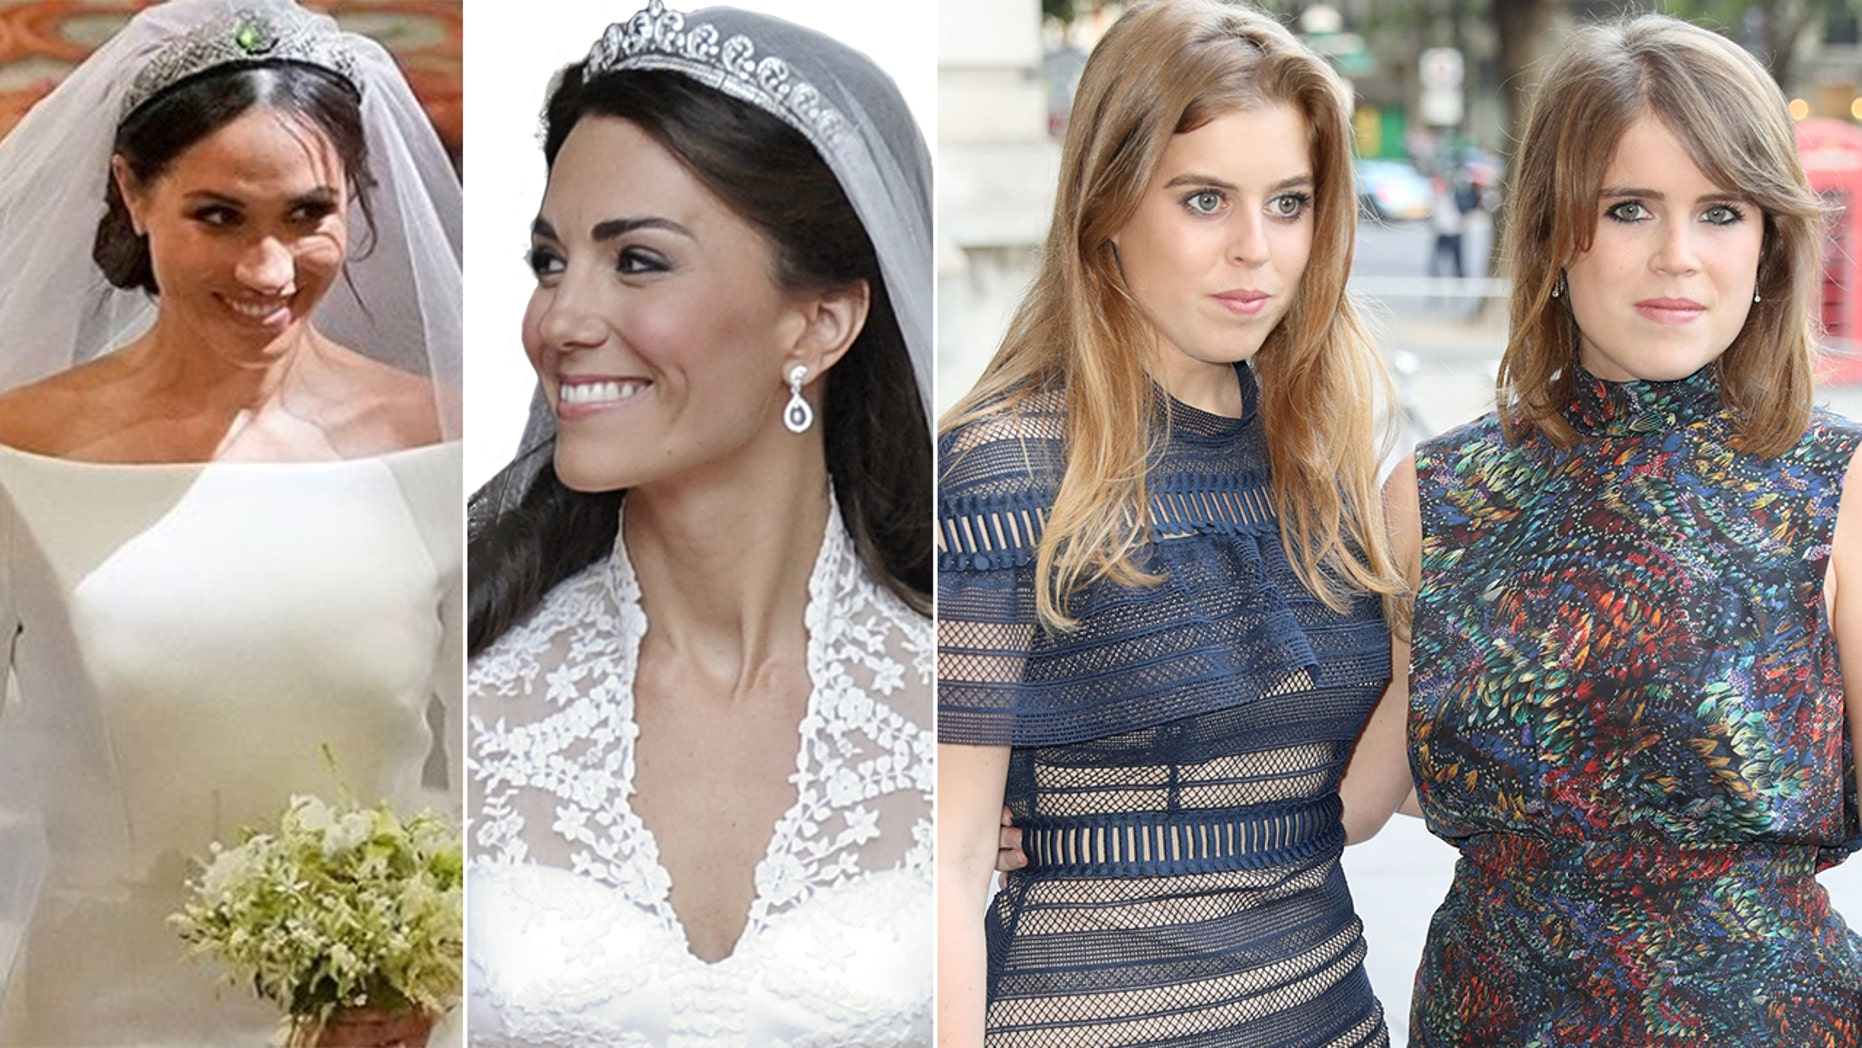 Meghan Markle and Kate Middleton wore tiaras to their weddings -- but Princesses Beatrice and Eugenie, right, will not.